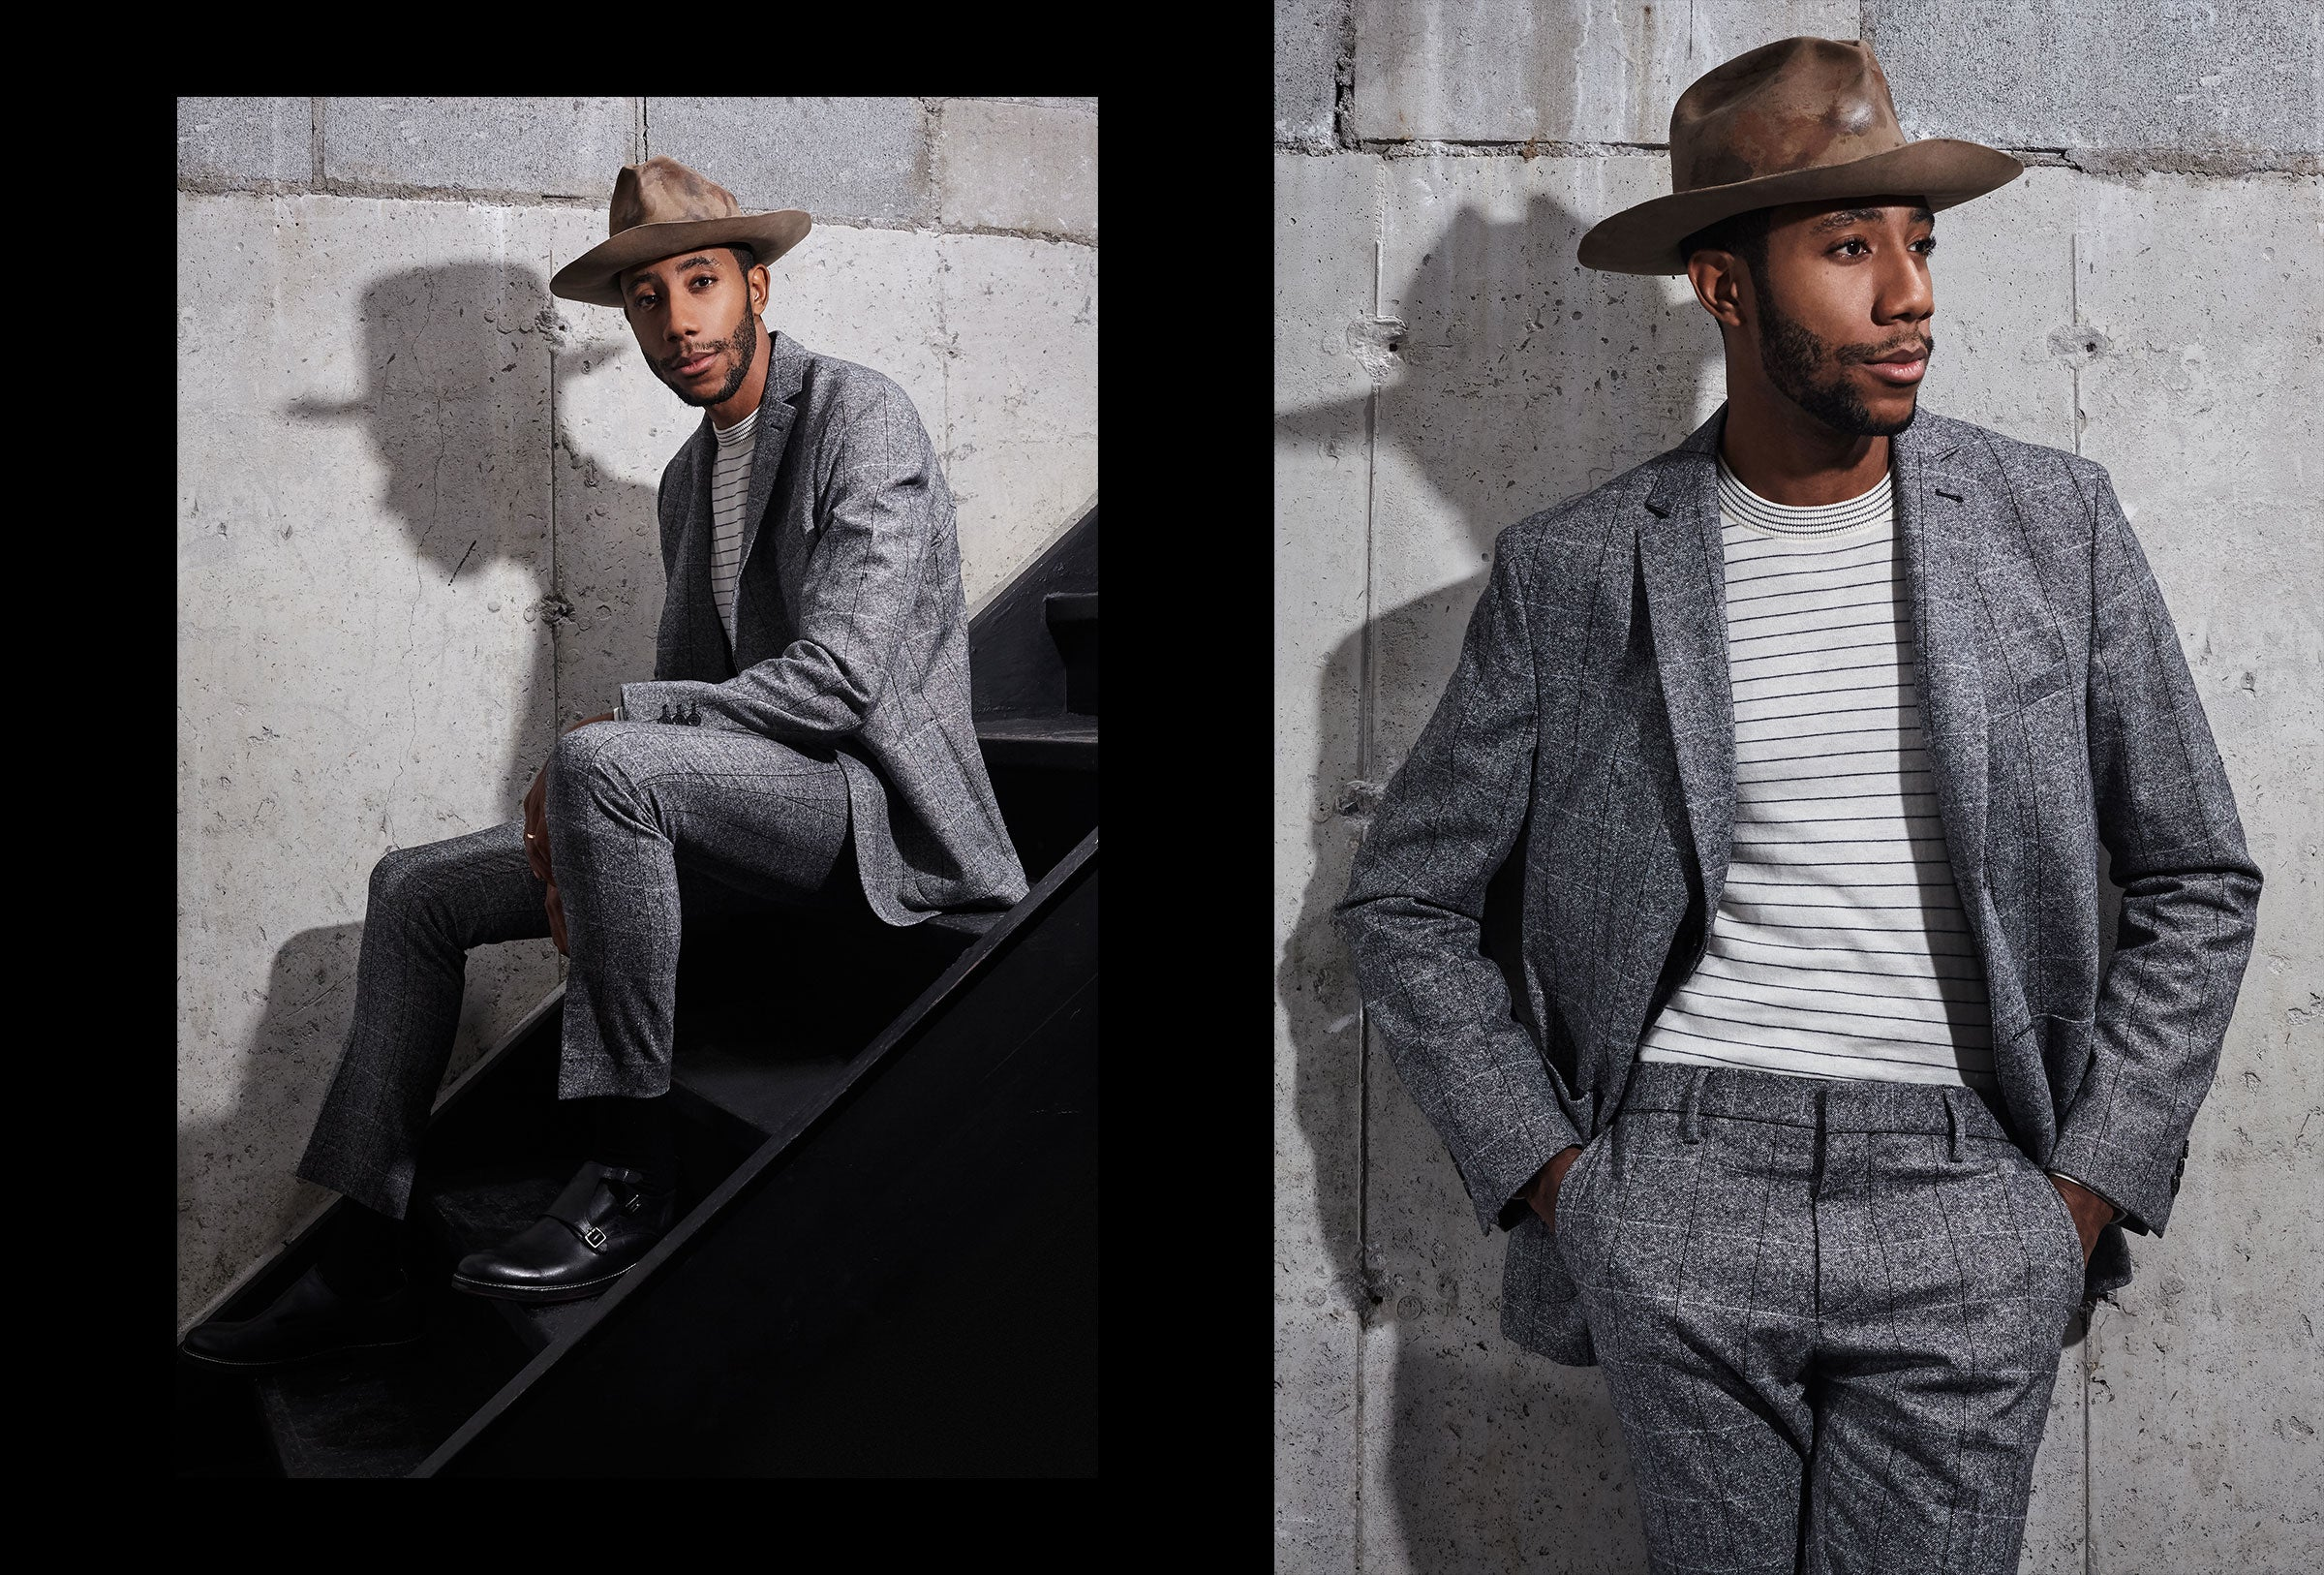 La Touche wears the Salt and Pepper Blazer and Trouser in Grey.